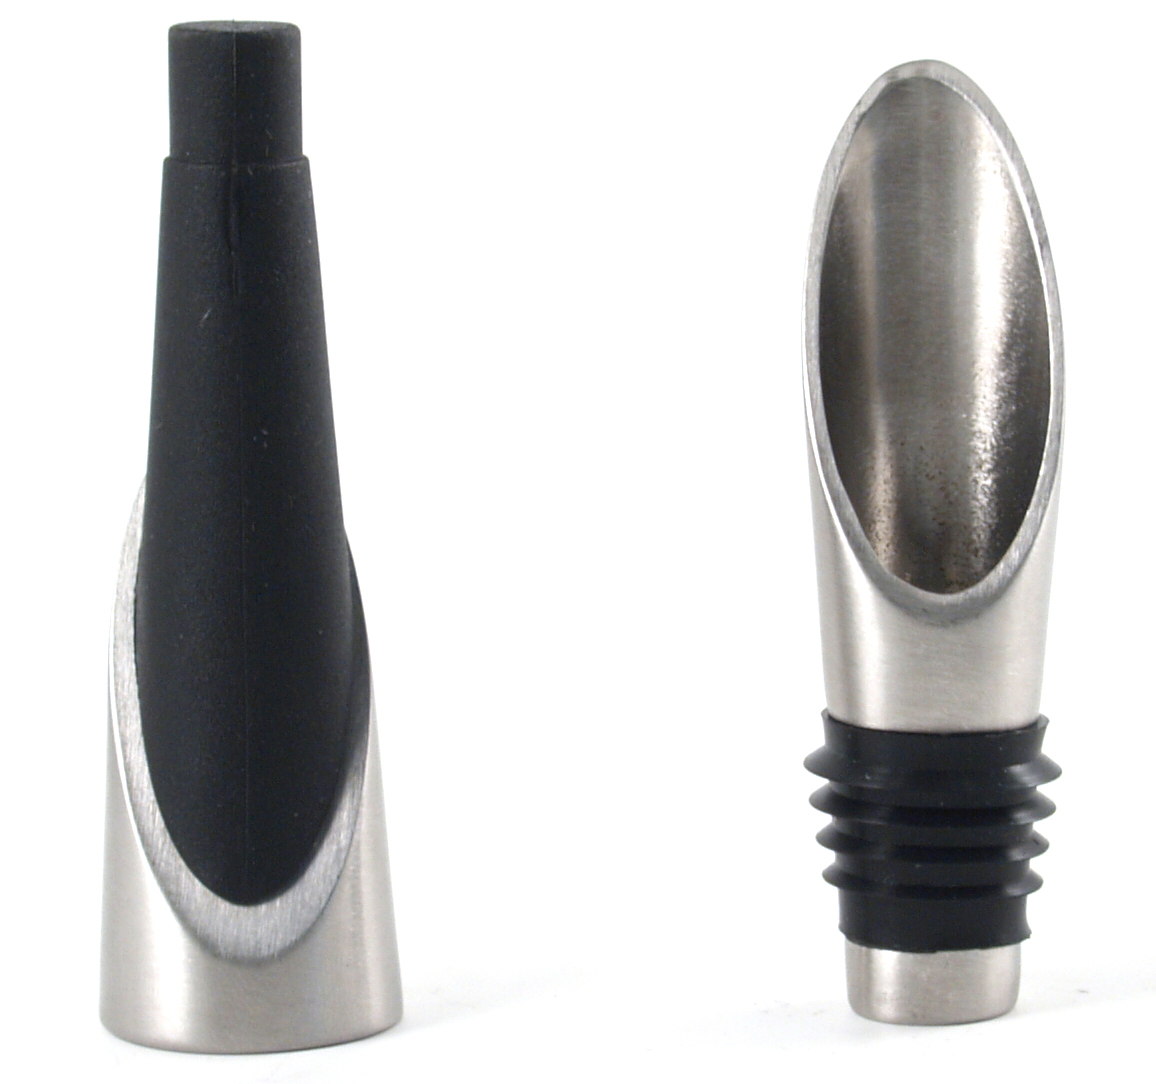 Brushed Stainless Steel Wine Bottle Pourer and Stopper